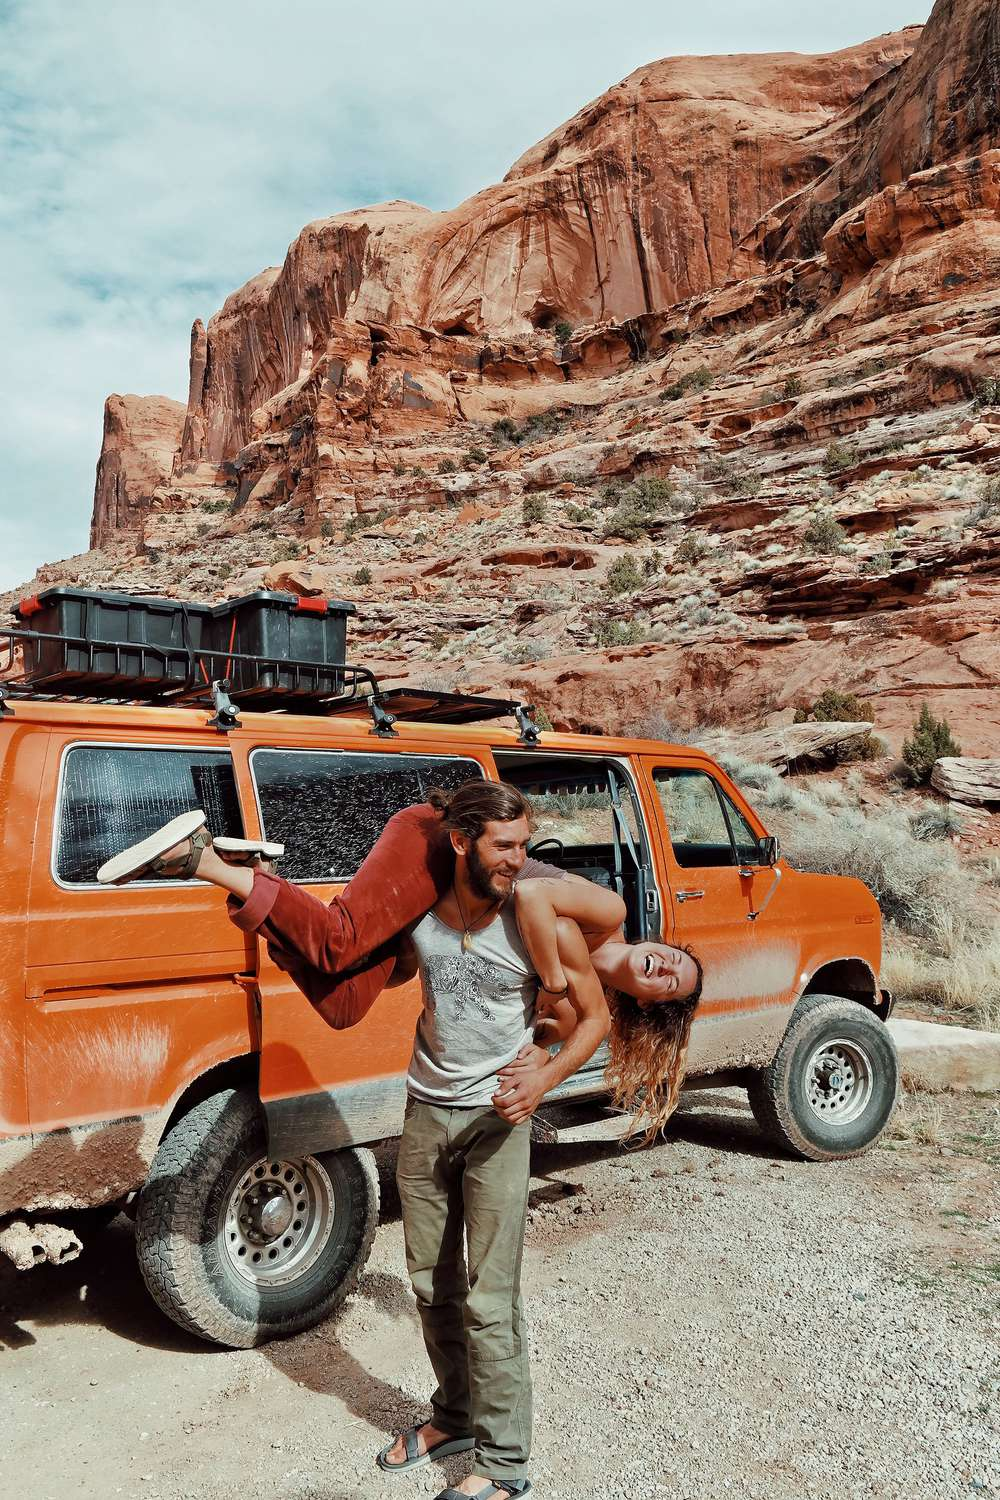 Keith Madia carrying Brianna Madia over should in desert by orange van